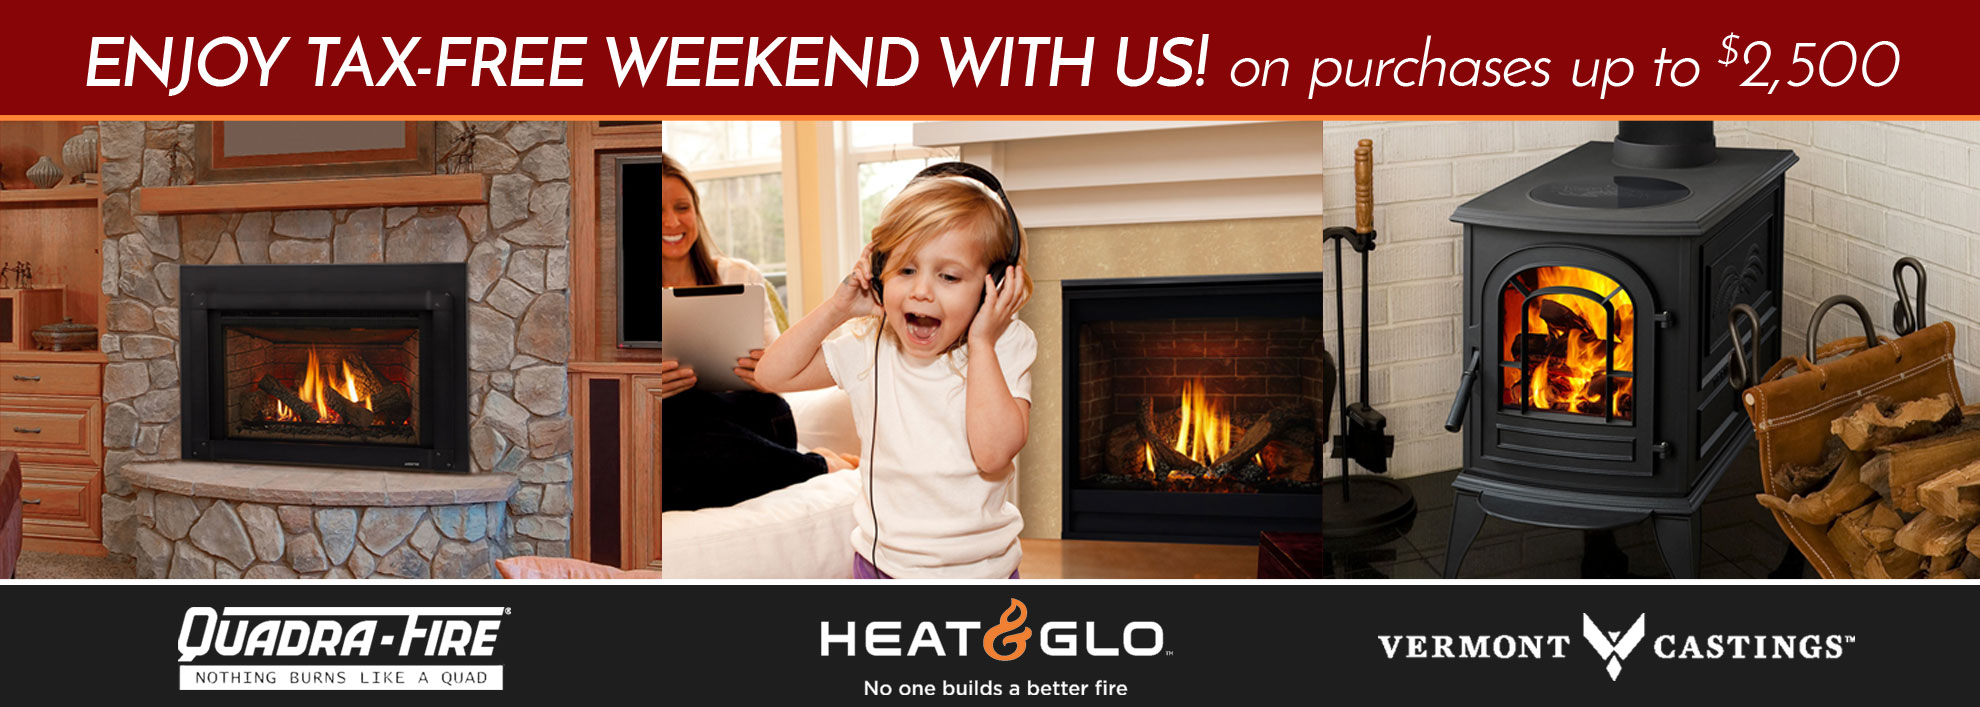 The Fireplace Showcase - Tax Free Weekend, Seekonk, MA